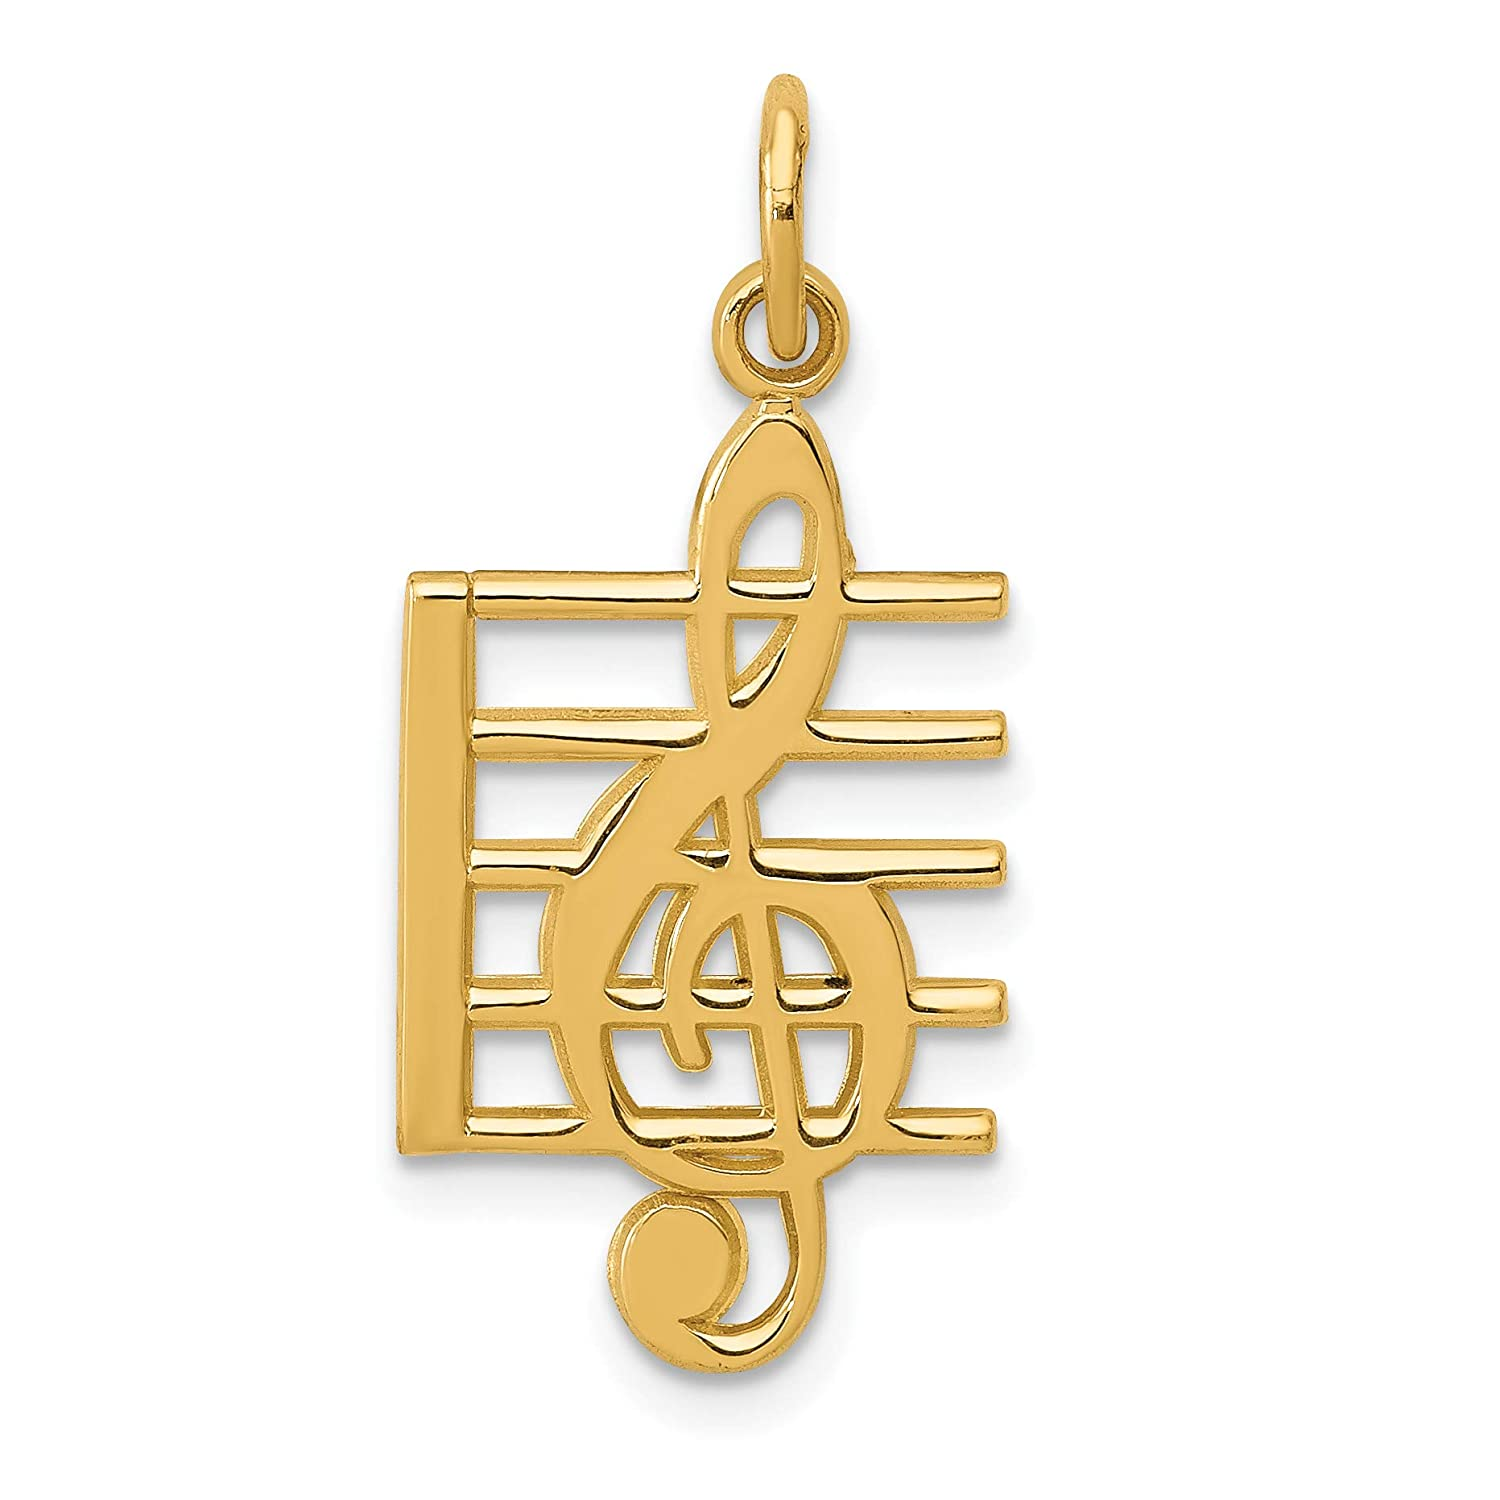 14k Yellow Gold Treble Clef Symbol On Music Scale Charm 25x12mm